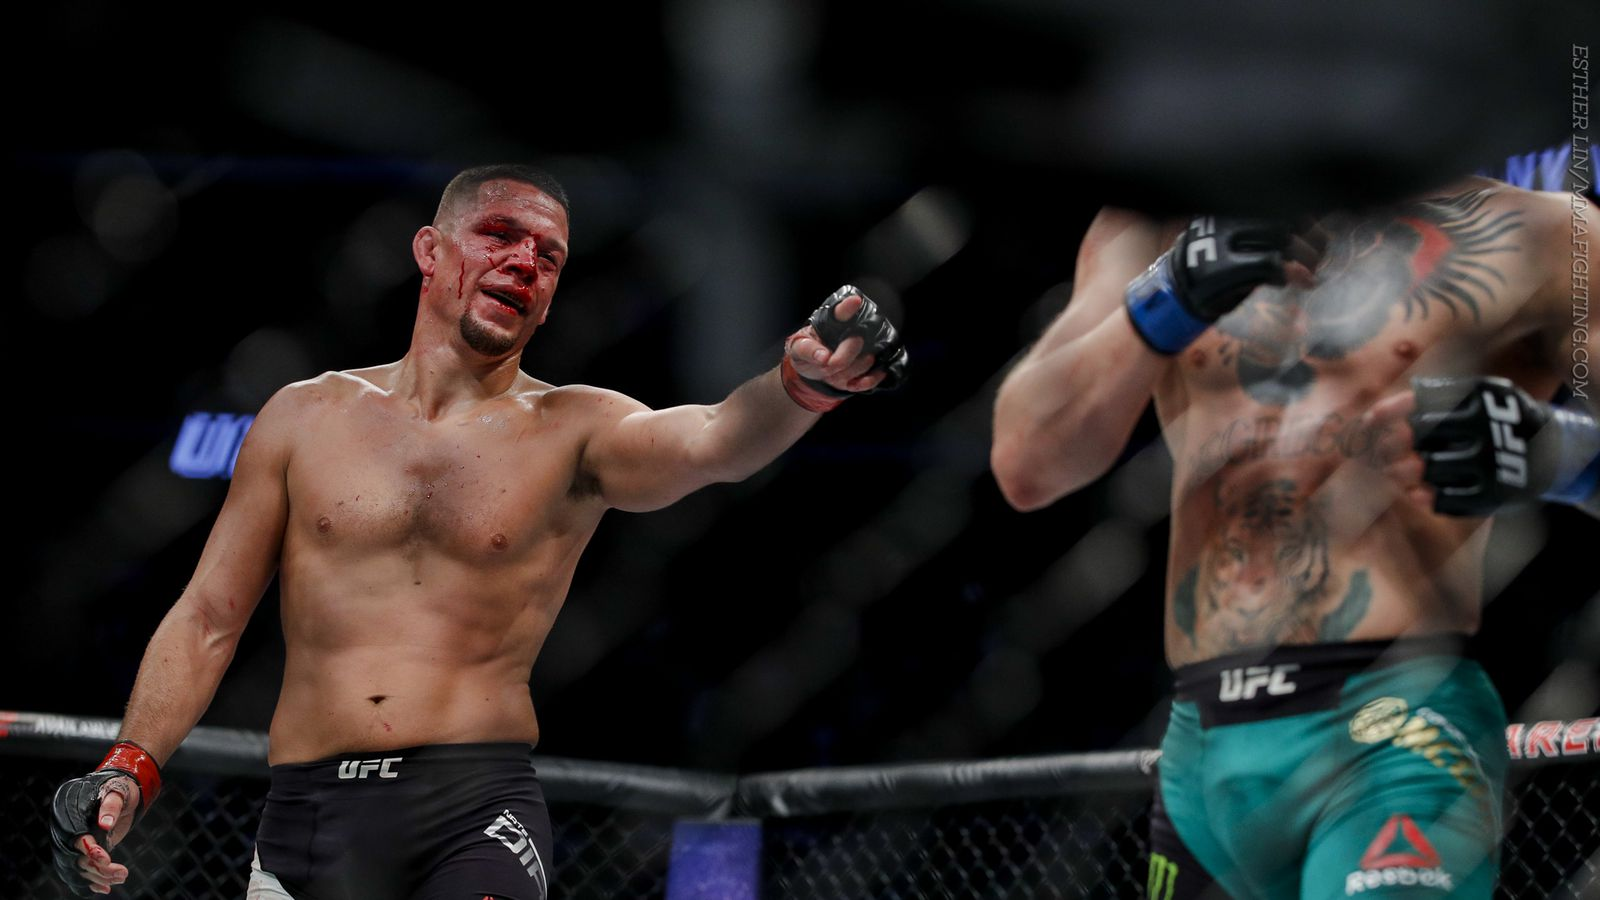 Nate Diaz doesn't think he lost to Conor McGregor: 'He did a lot of running away'